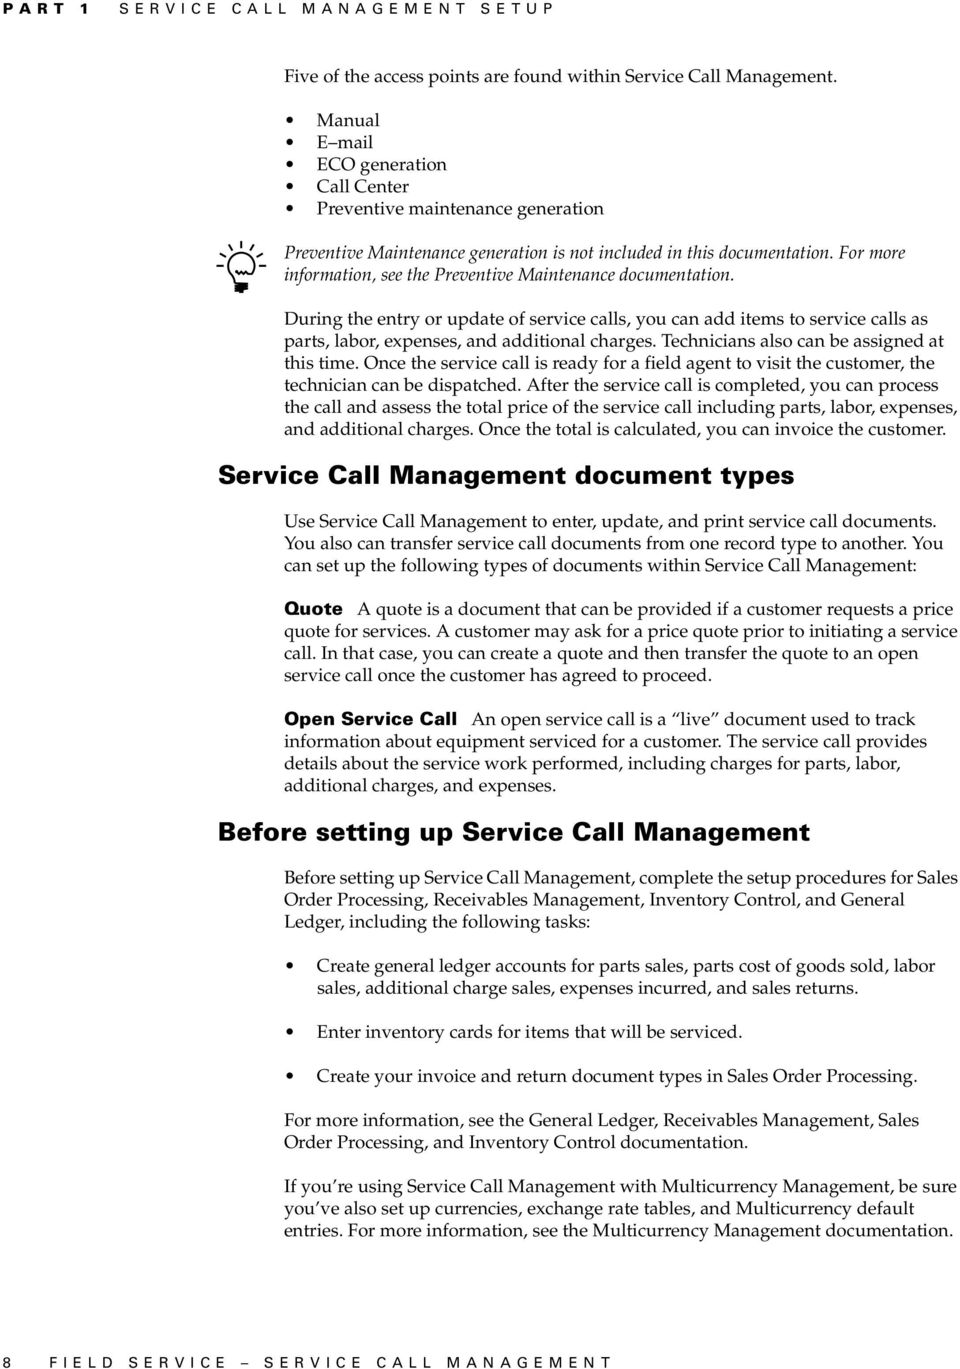 For more information, see the Preventive Maintenance documentation. During the entry or update of service calls, you can add items to service calls as parts, labor, expenses, and additional charges.